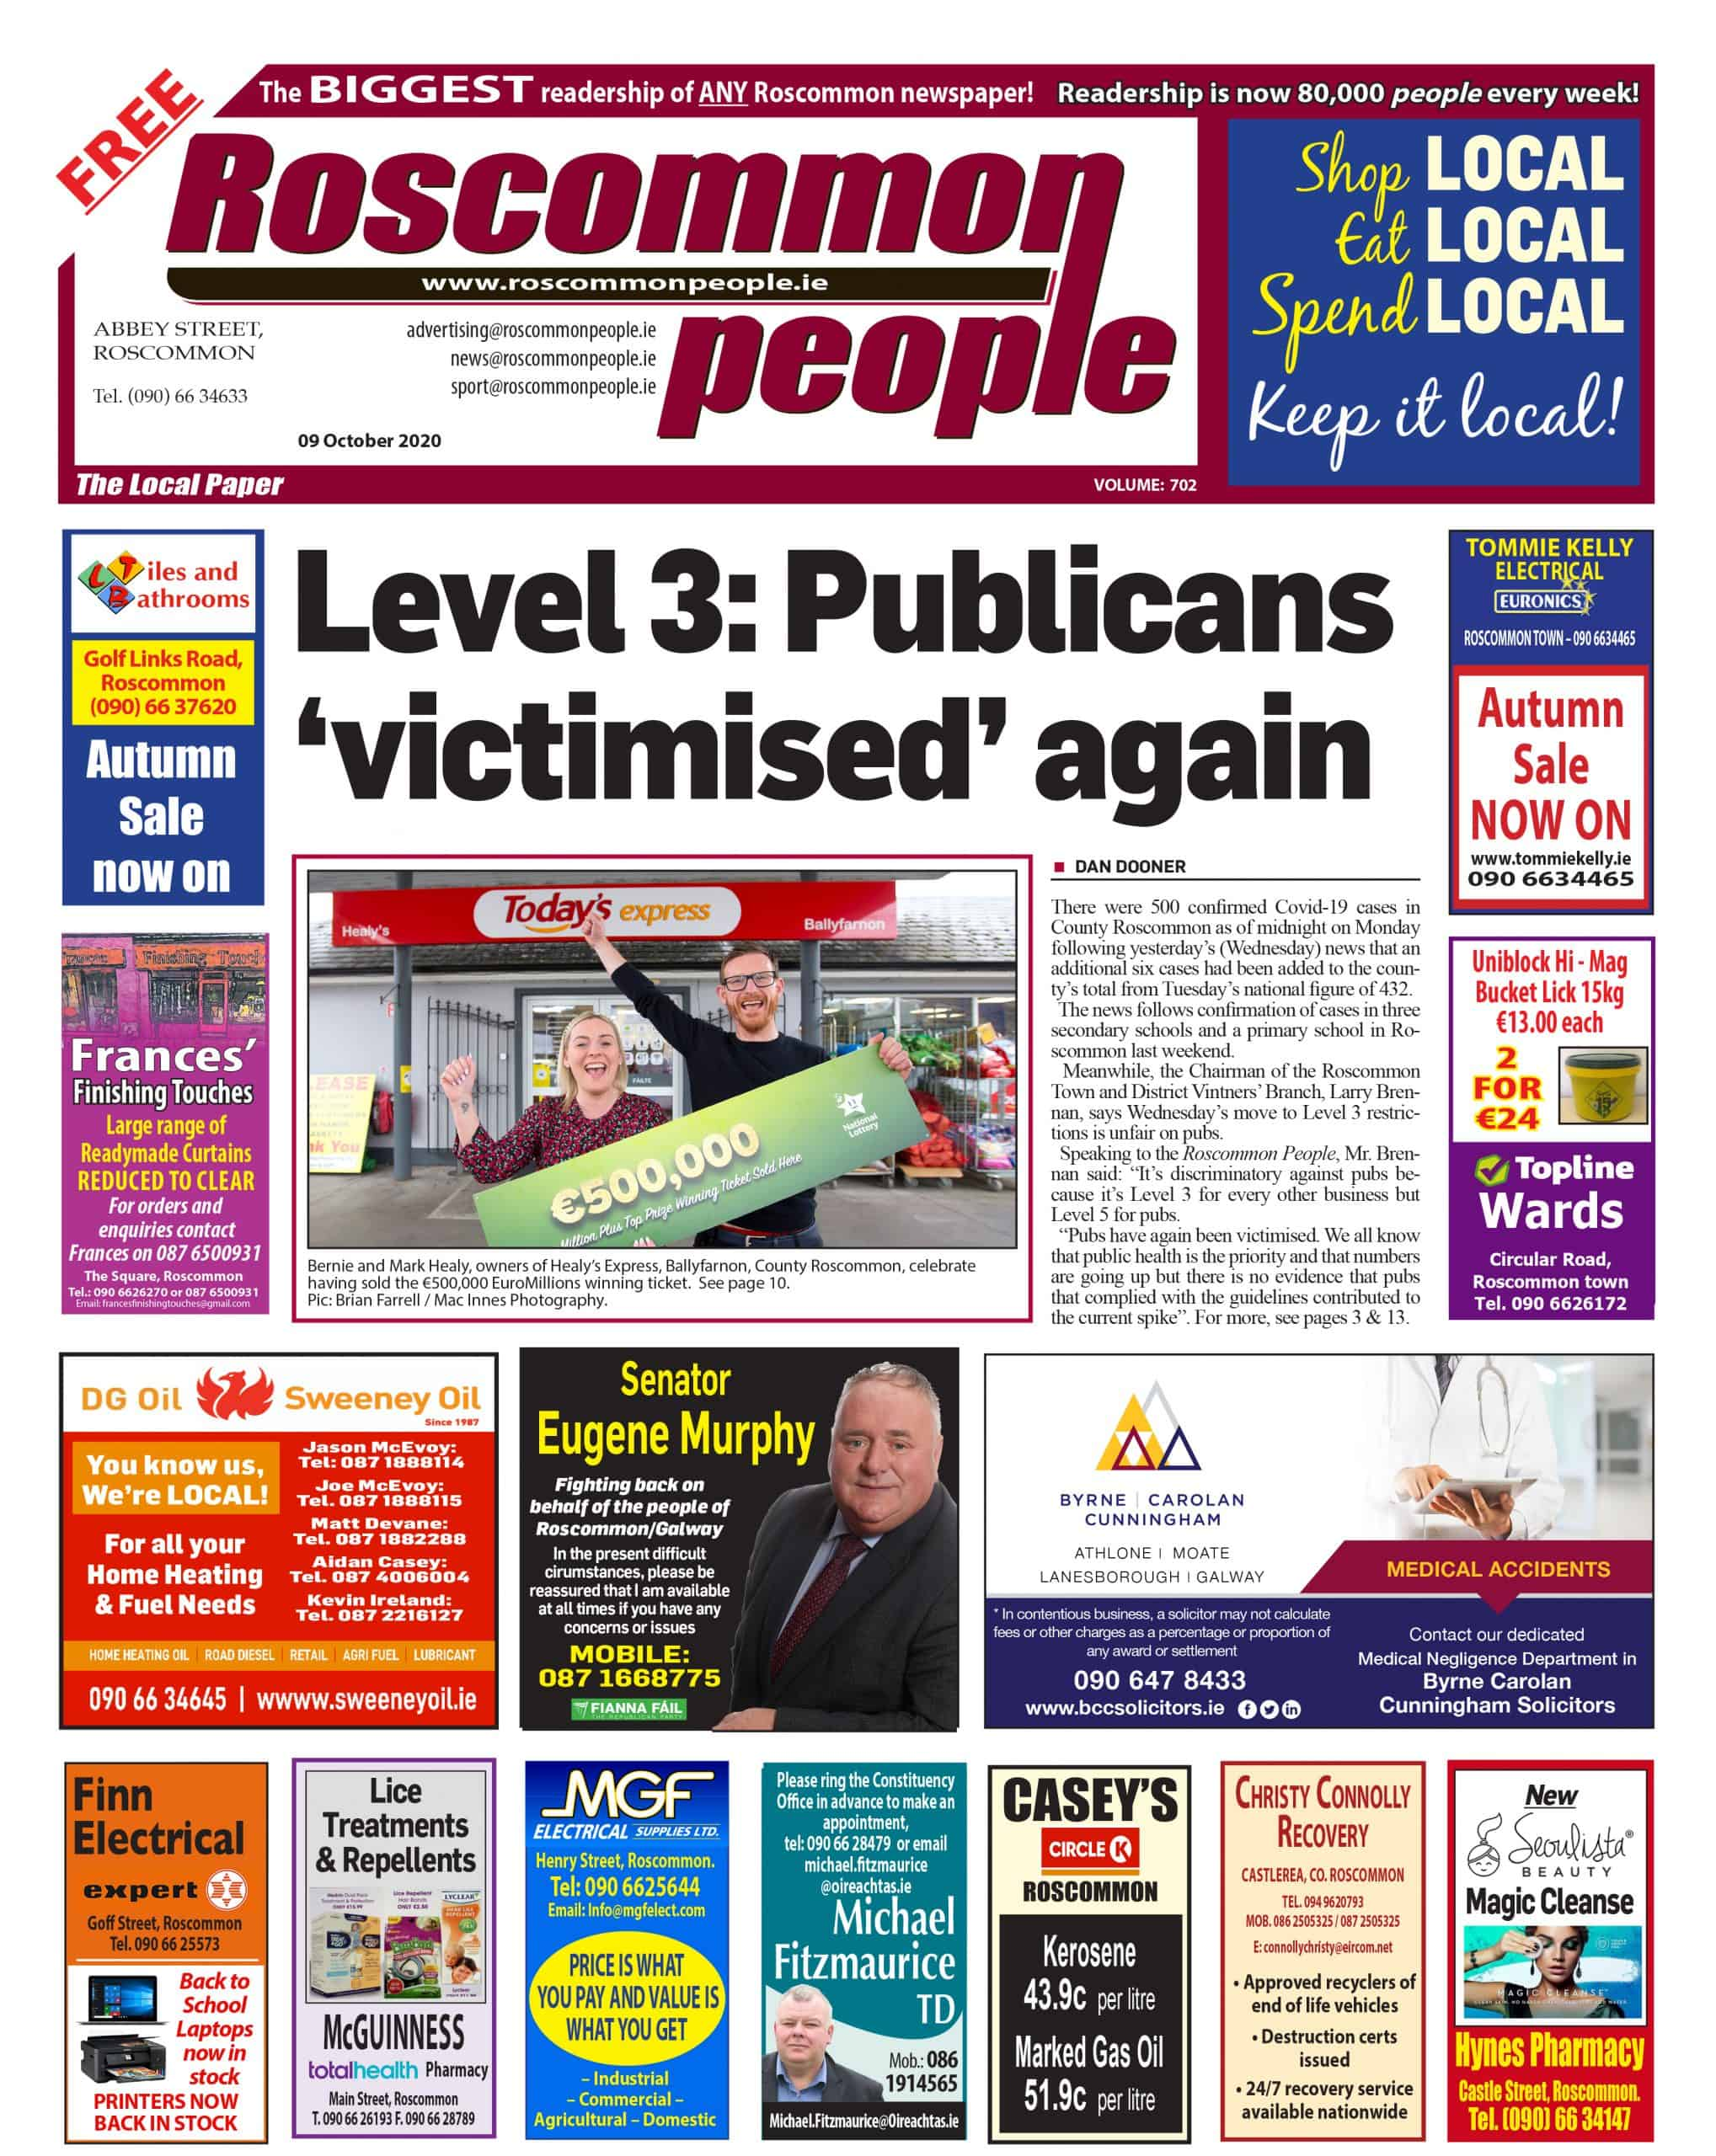 Roscommon People Digital Edition 9th October 2020